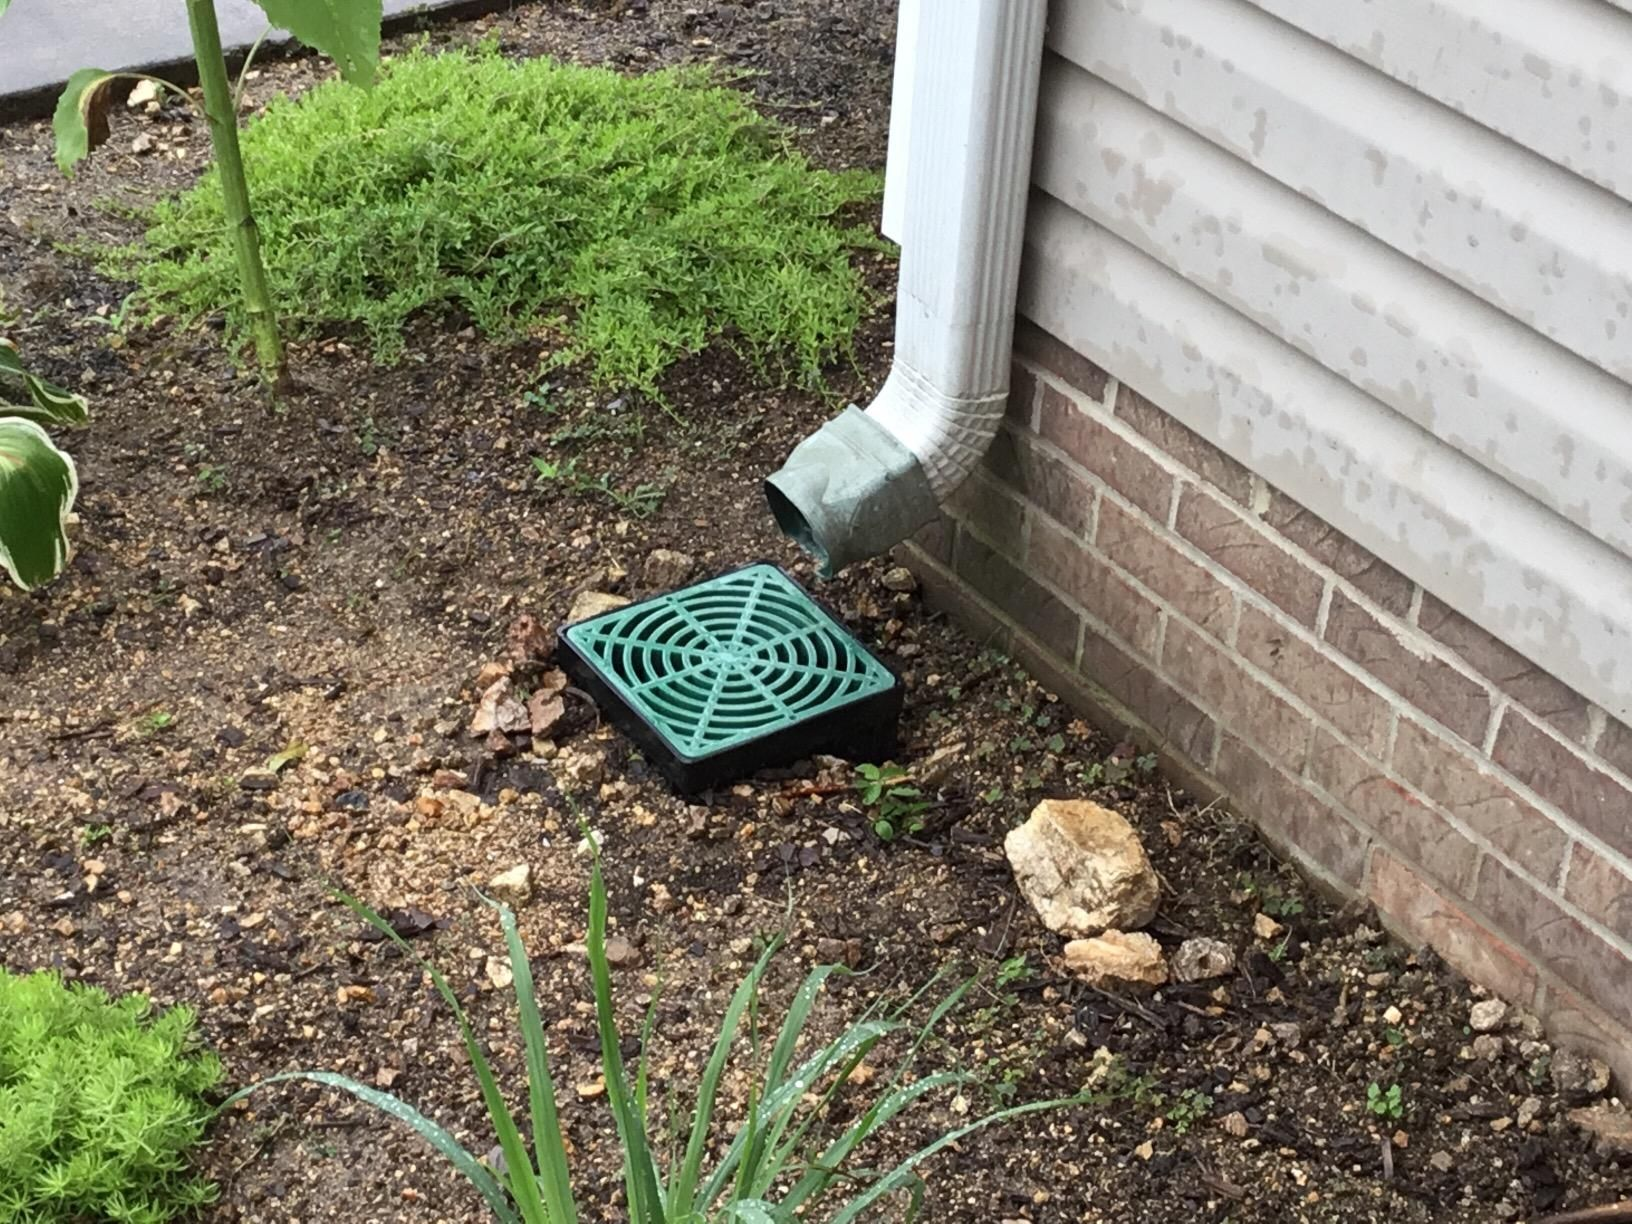 The Stormdrain Fsd 090 K 9 Inch Square Catch Basin And Green Grate